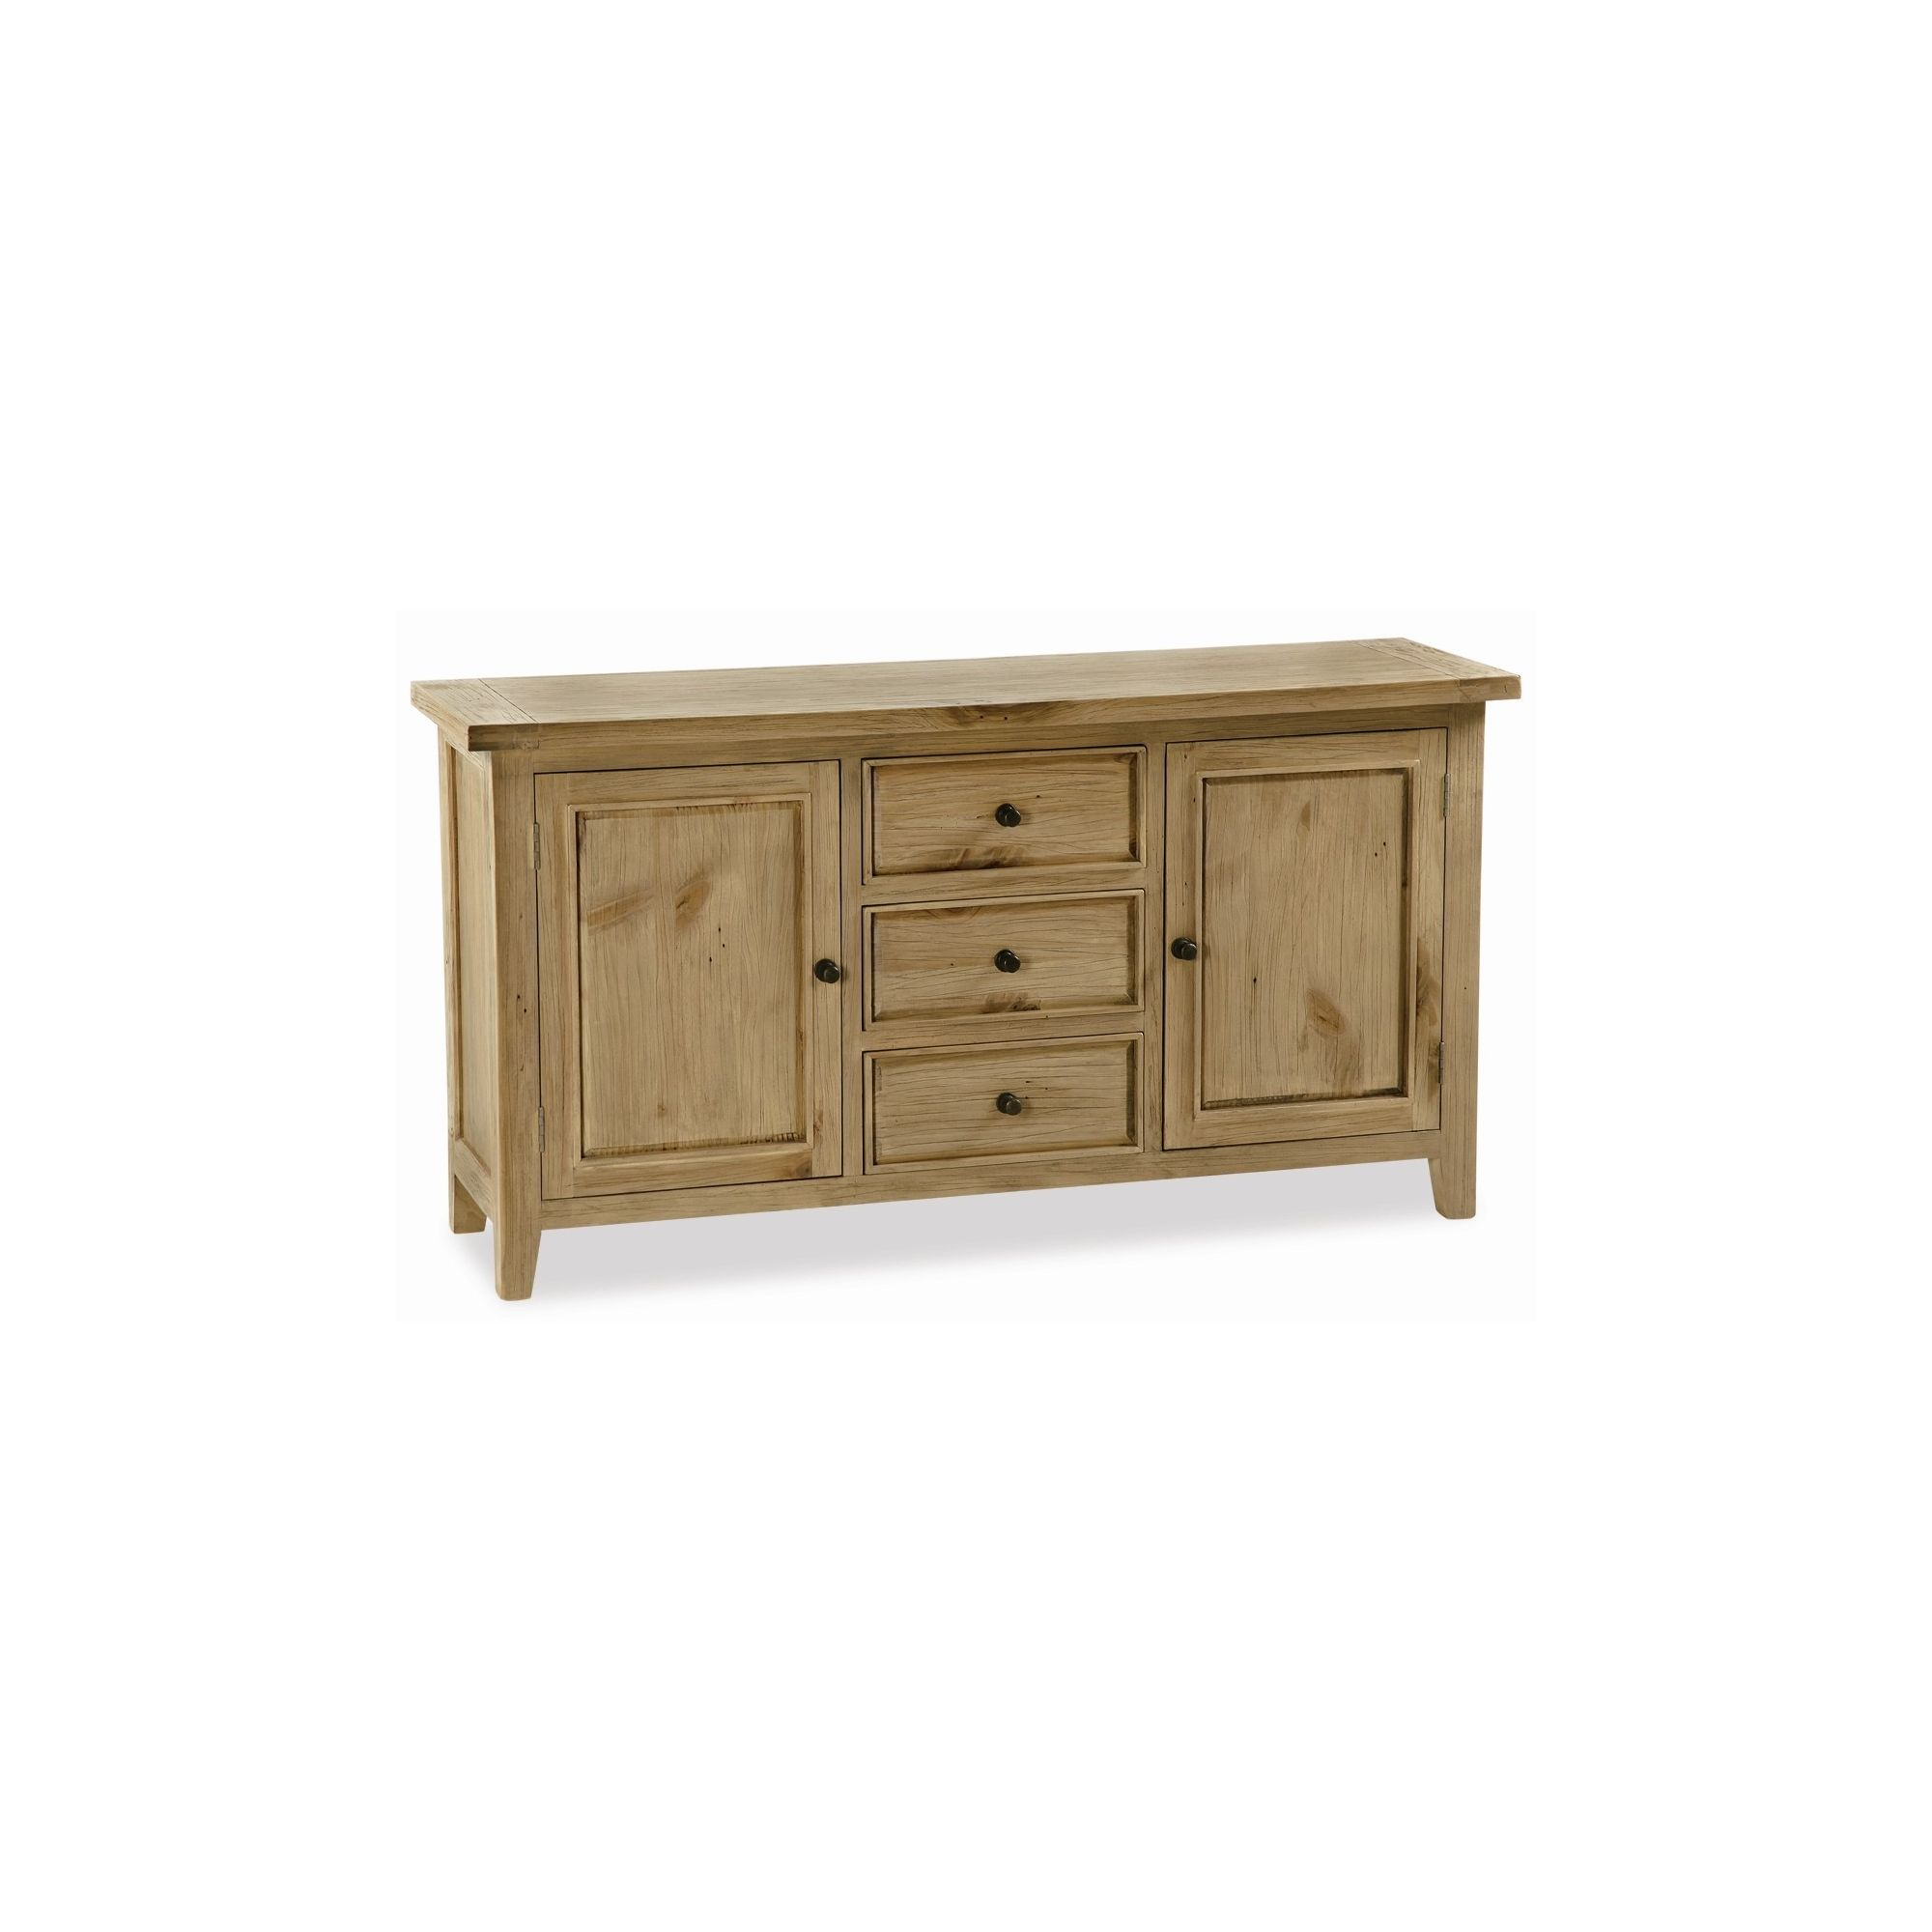 Alterton Furniture Naples Sideboard at Tesco Direct